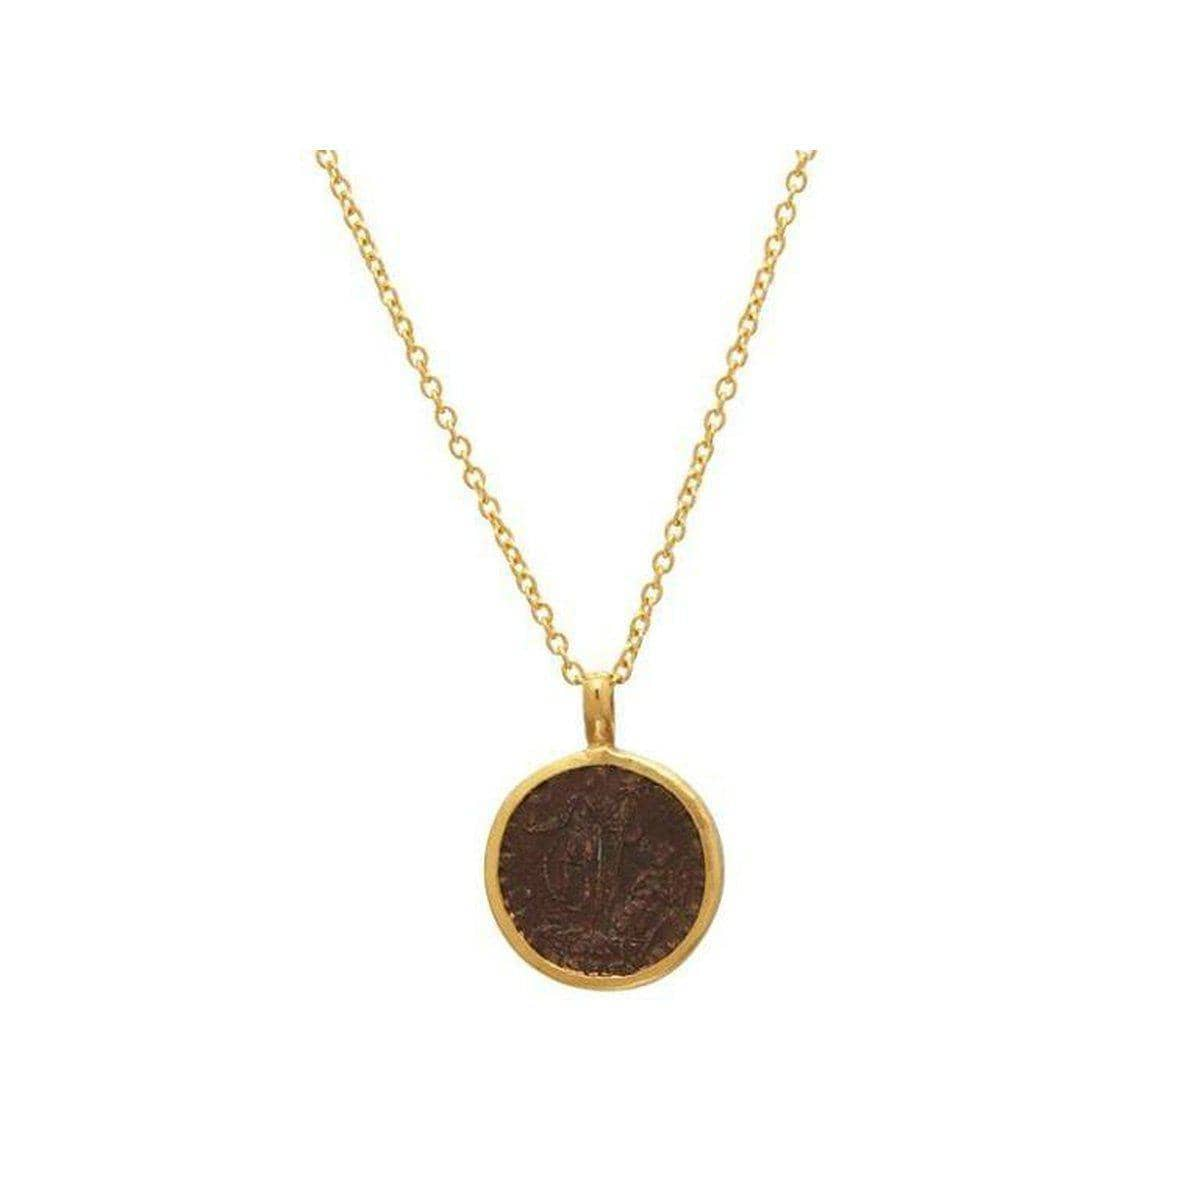 Antiquities 24K Gold Coin Necklace - N-U25839-CN-GURHAN-Renee Taylor Gallery